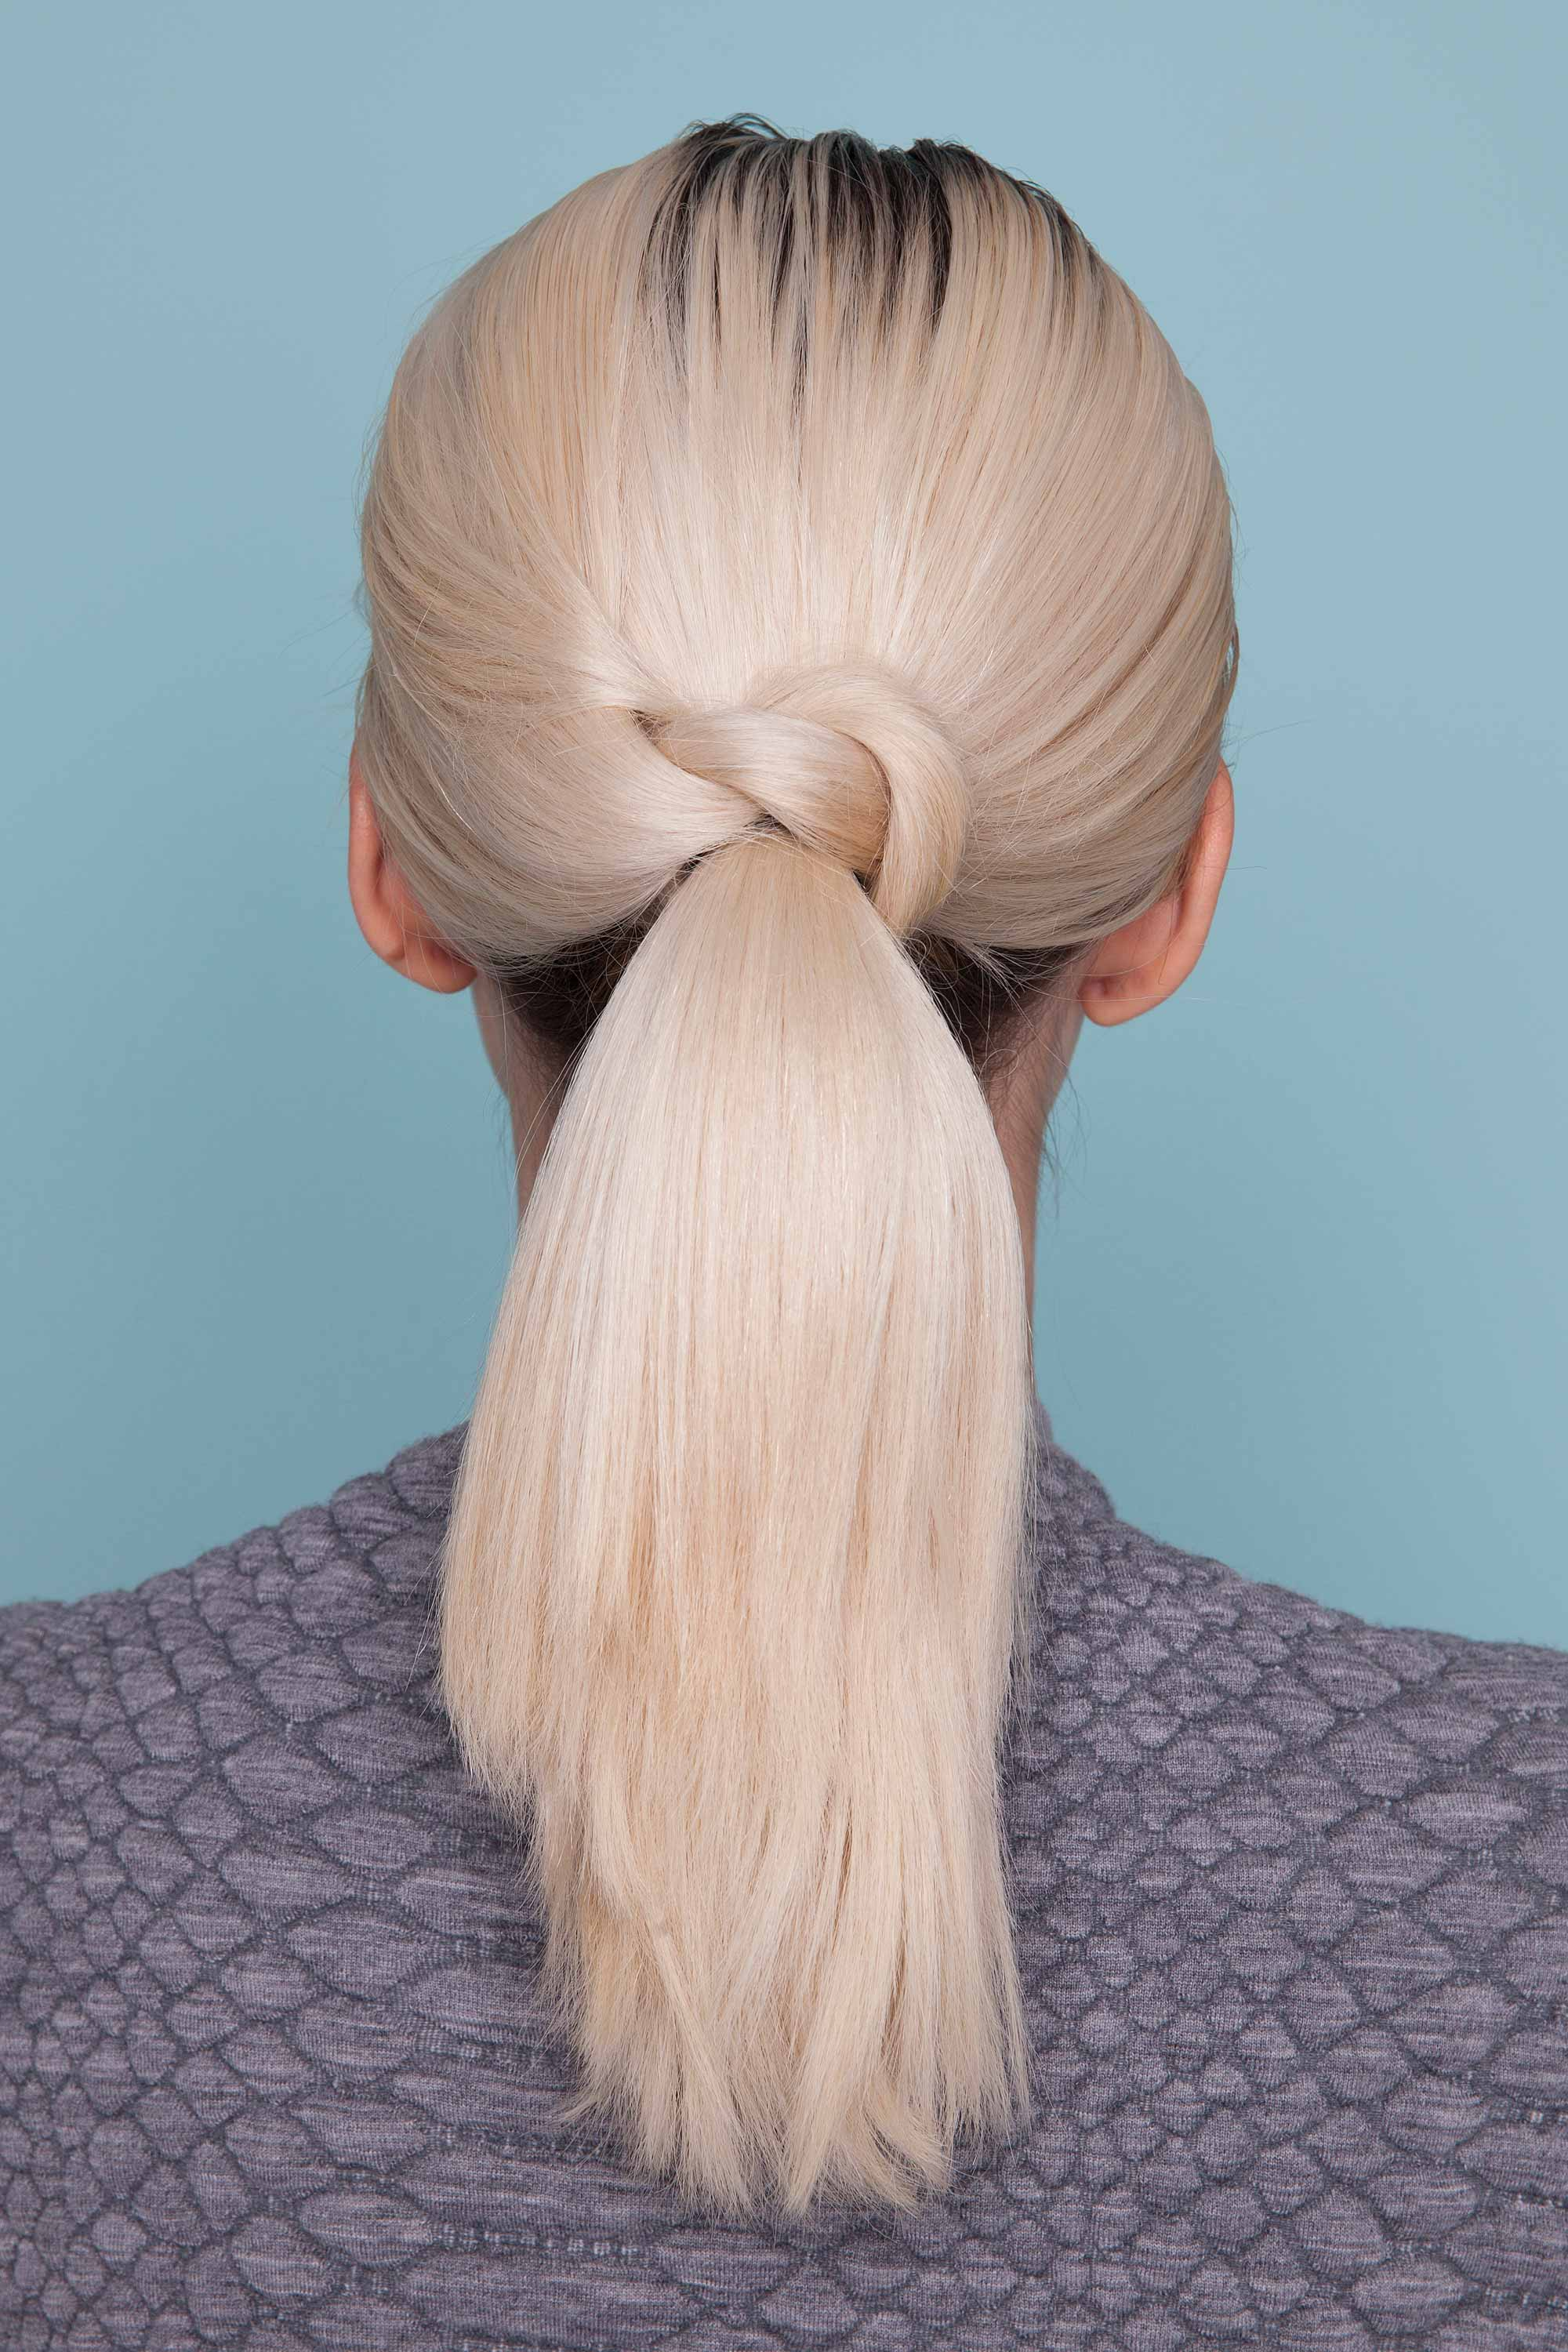 new ponytail ideas with the cool knotted pony